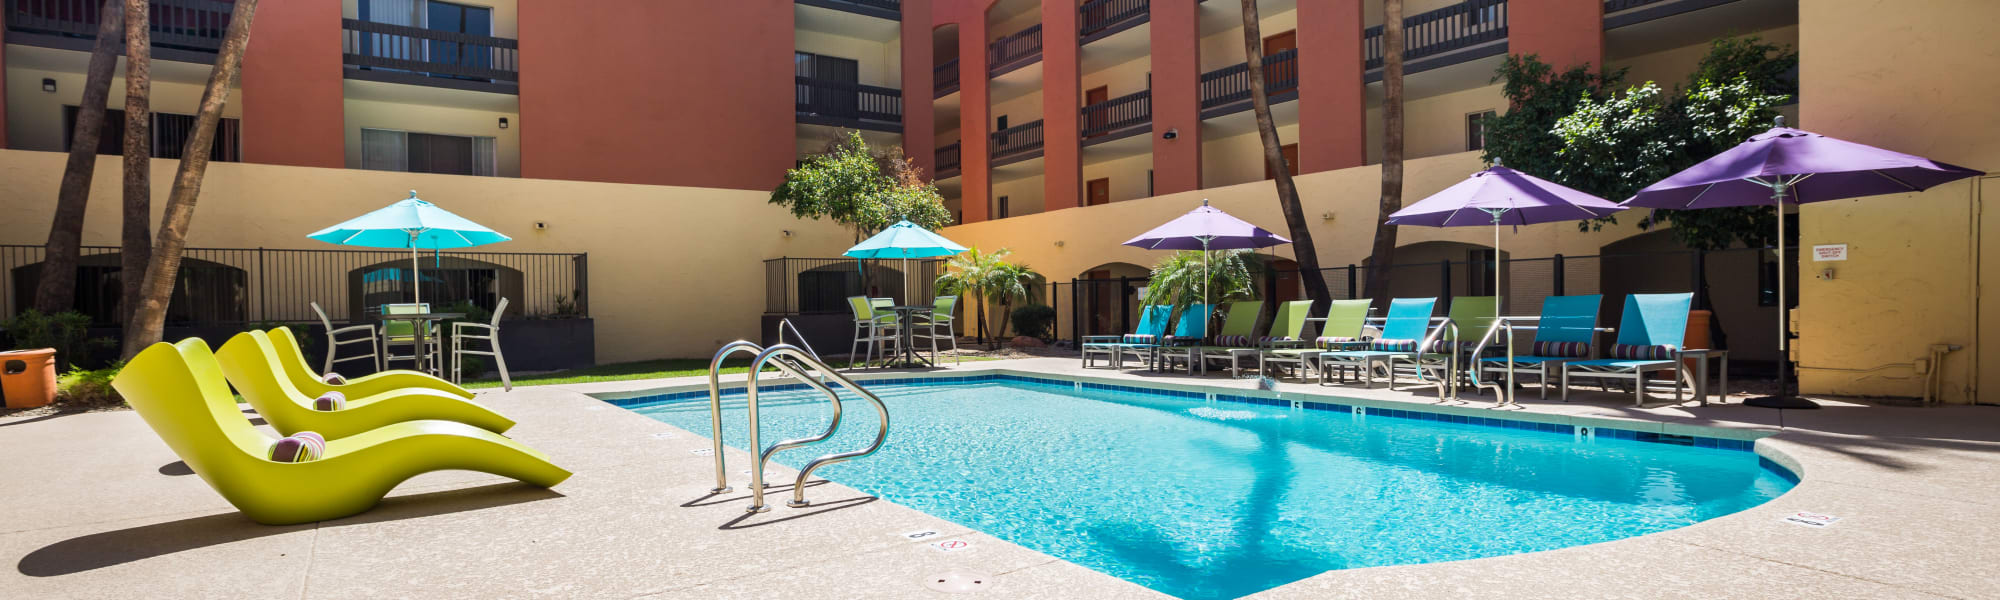 Resident benefits at 4127 Arcadia in Phoenix, Arizona